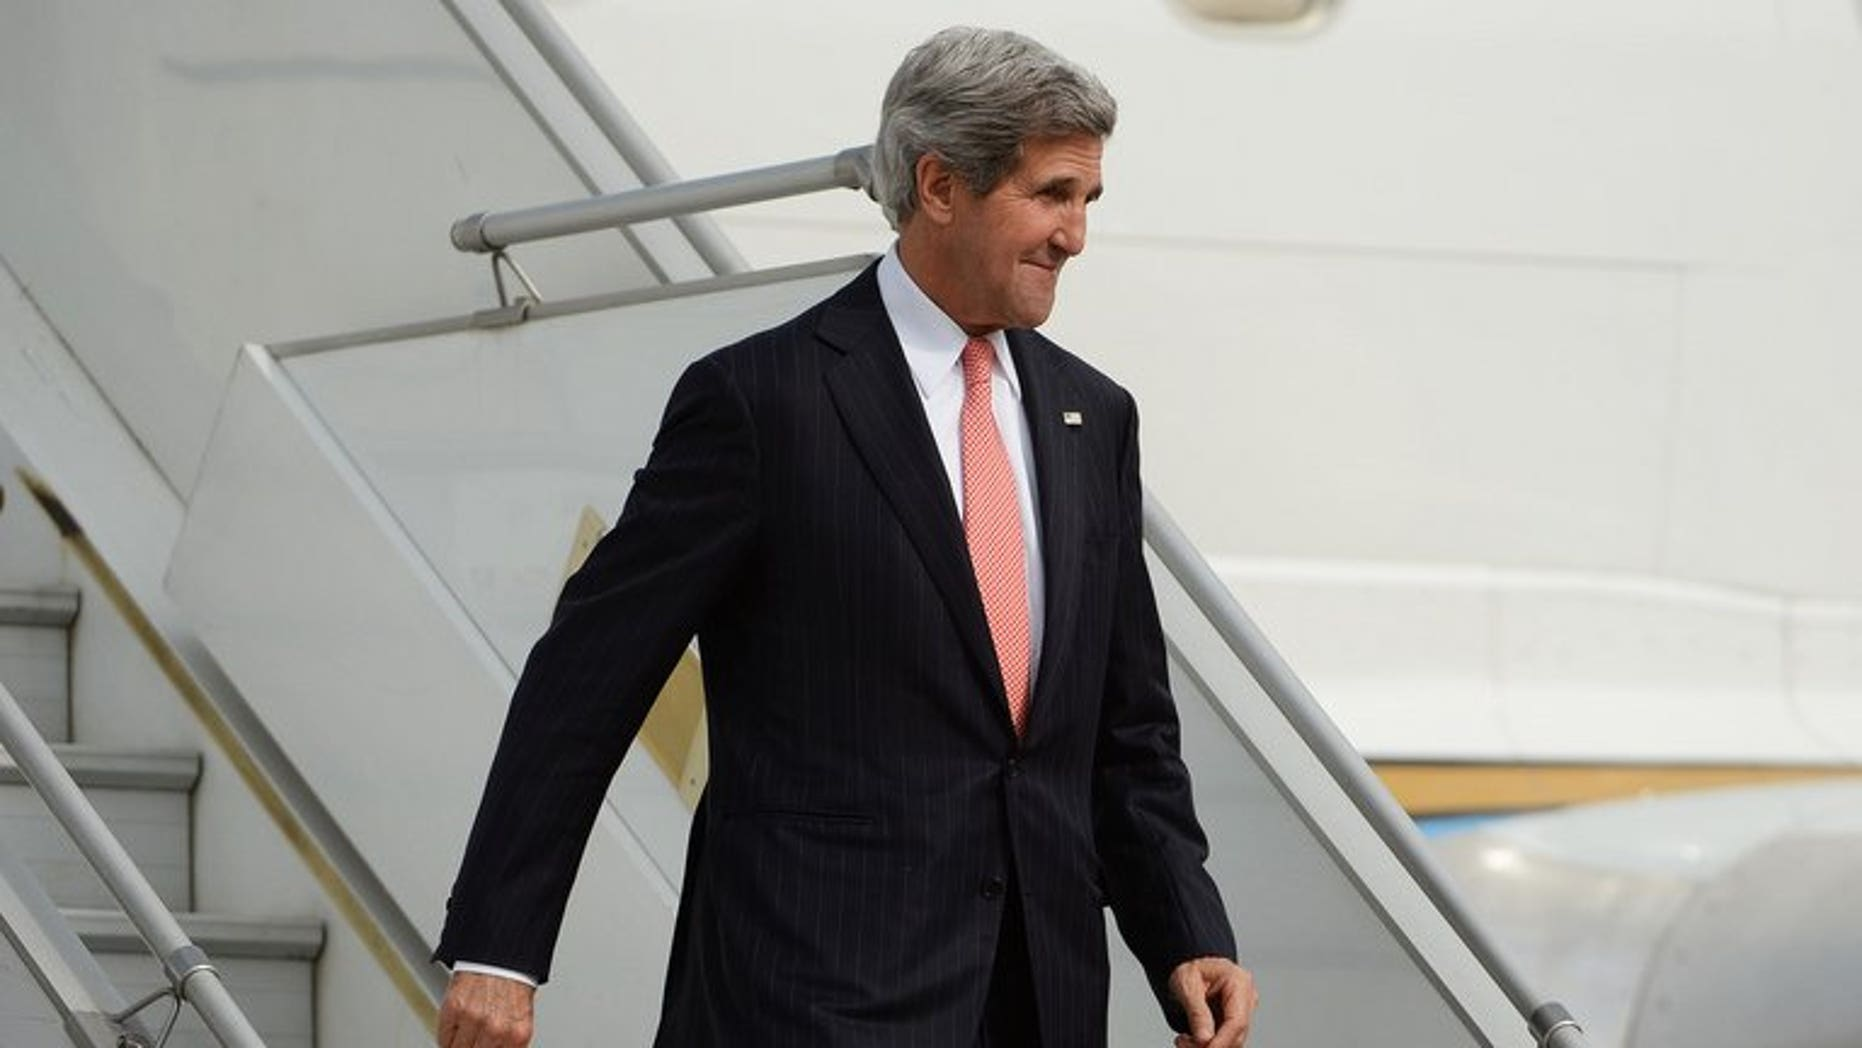 US Secretary of State John Kerry arrives at Palam Air Force Station in New Delhi, on June 23, 2013. Kerry has arrived on his first official visit to India, an AFP reporter said, as the US administration was rocked by news that a wanted former American intelligence operative had flown out of Hong Kong.